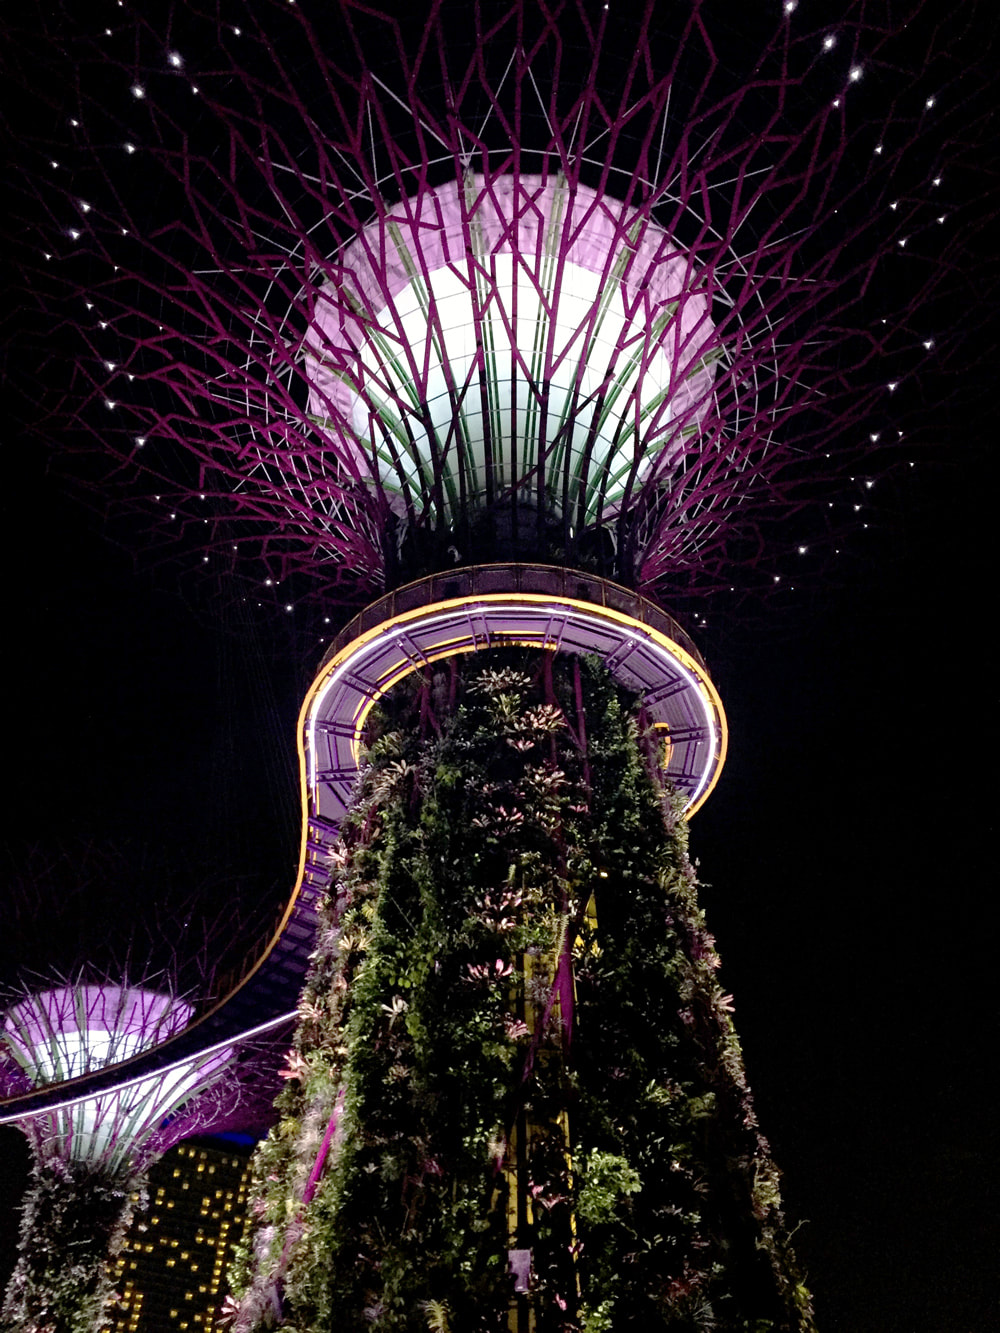 Supertree Grove and the OCBC Skyway at Gardens by the Bay, Singapore.